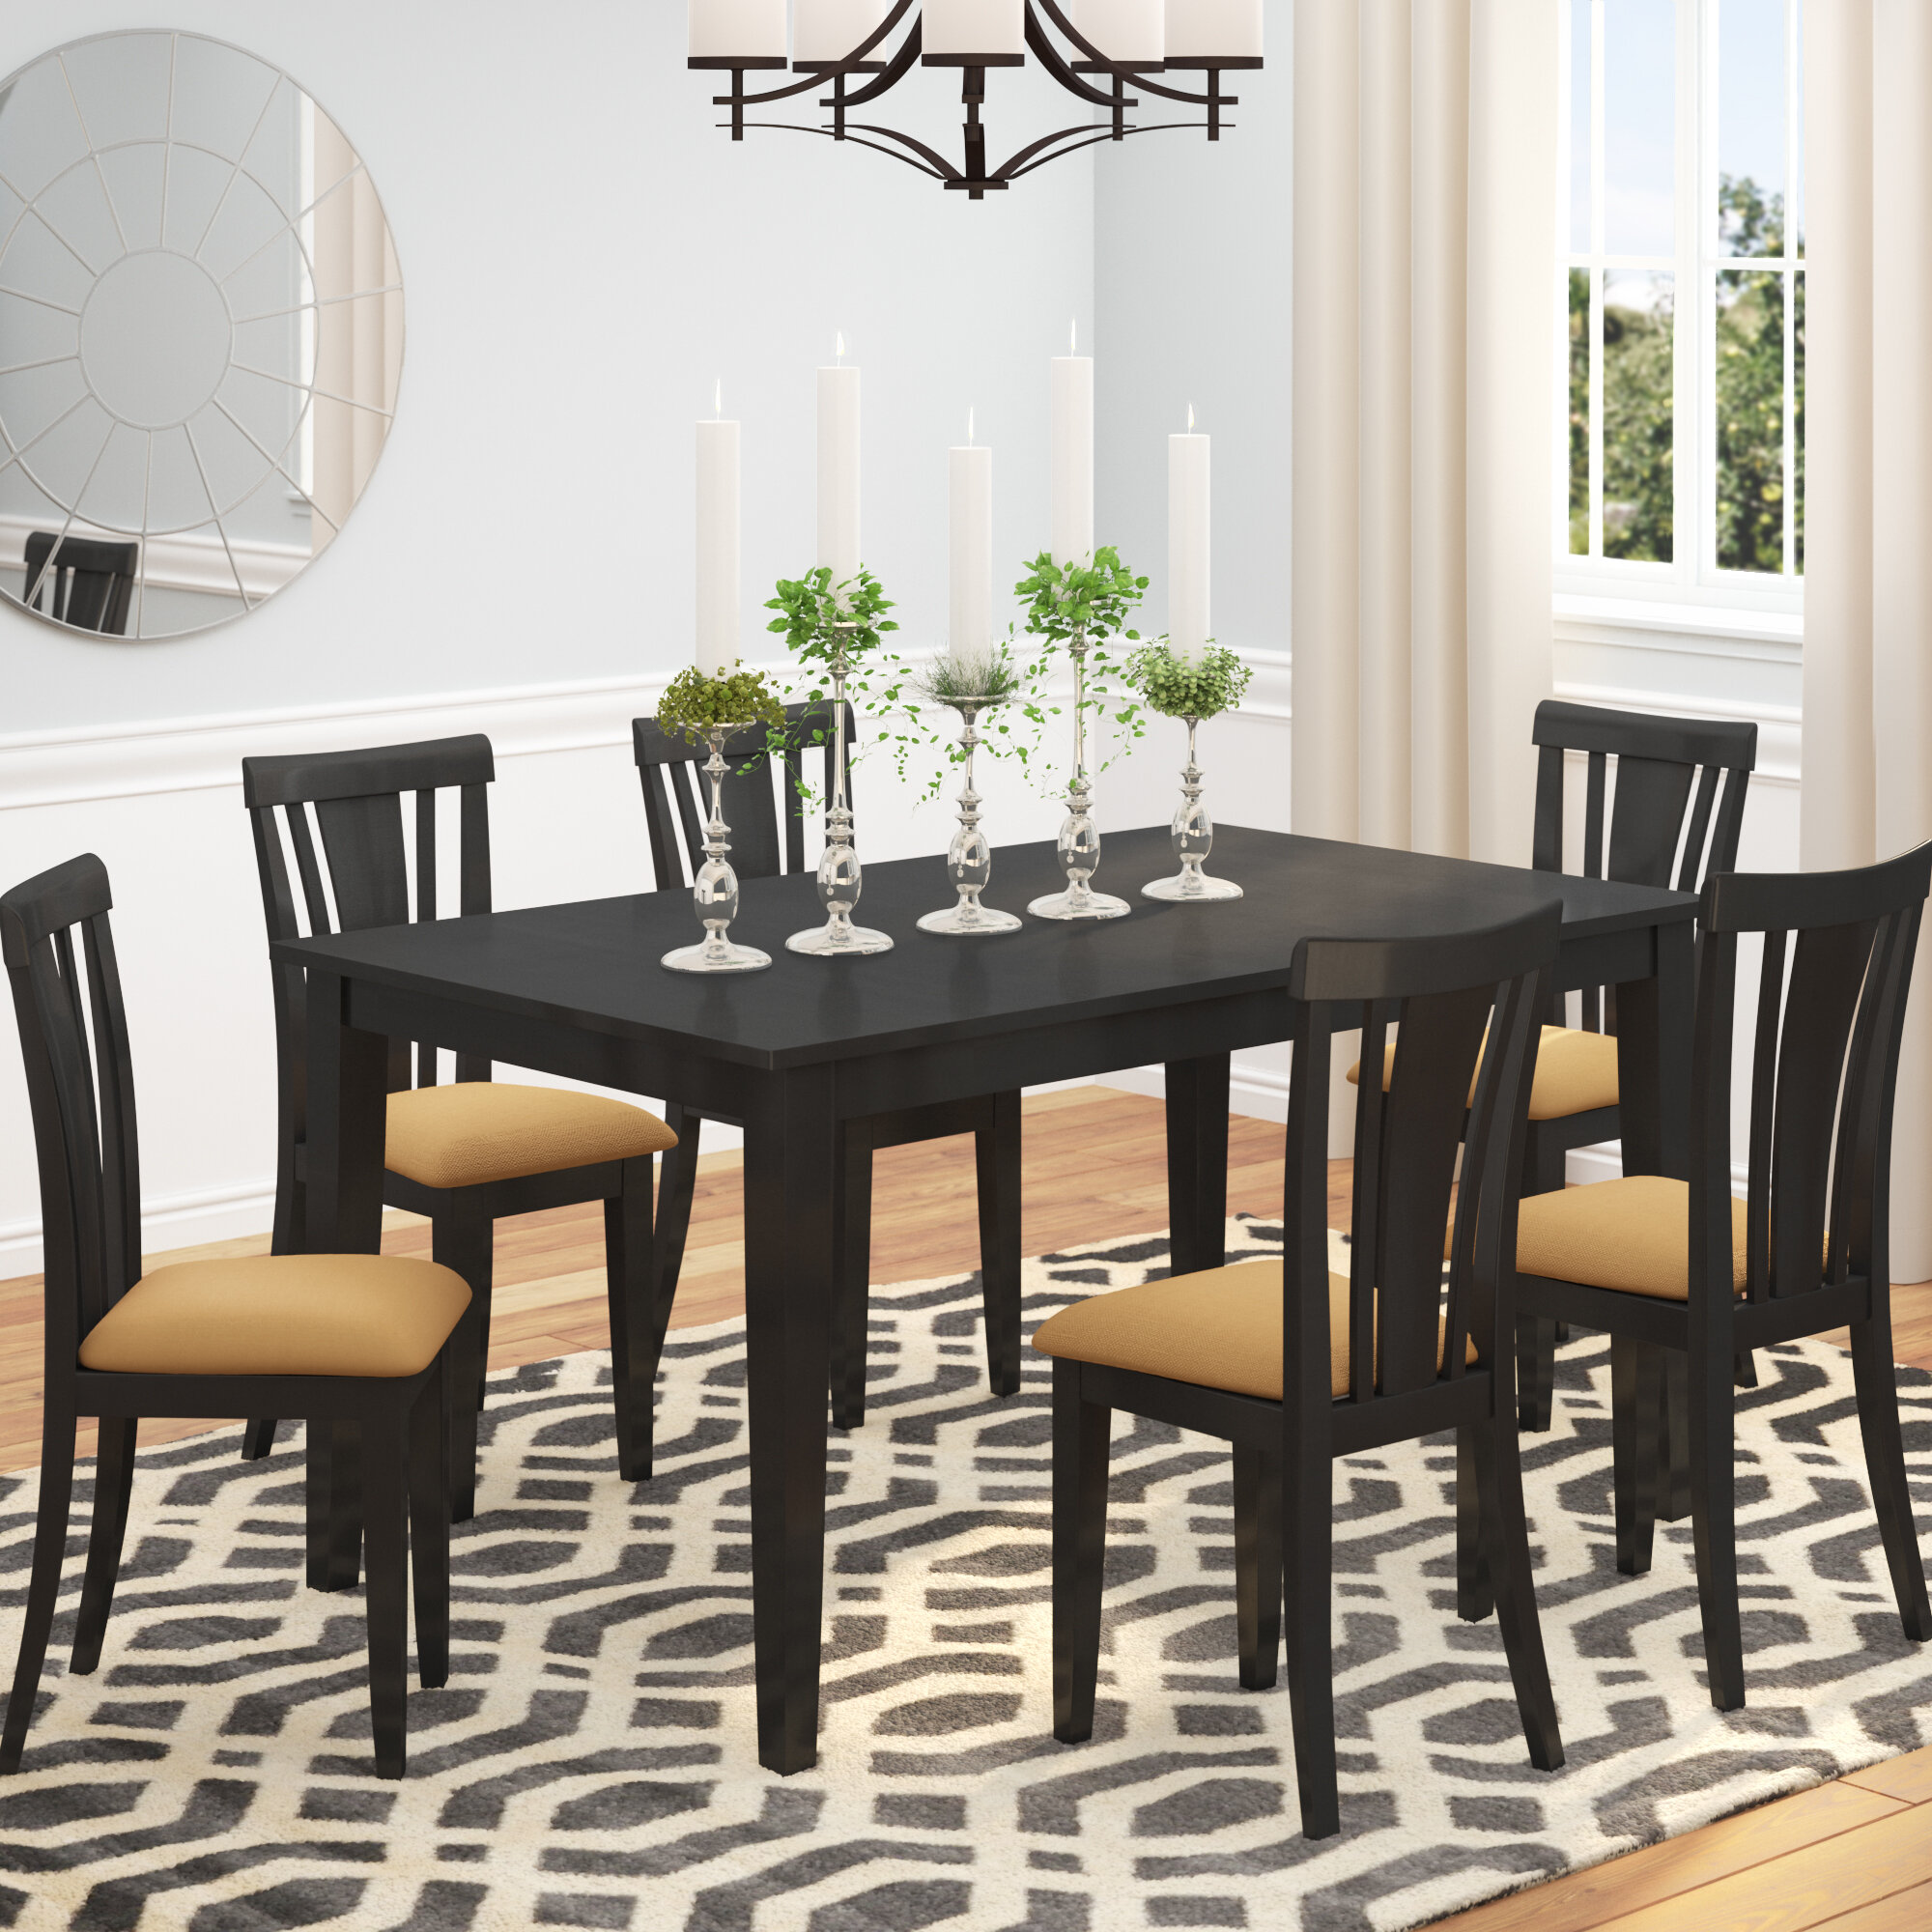 Andover Mills Oneill Modern 7 Piece Wood Dining Set Reviews Wayfair